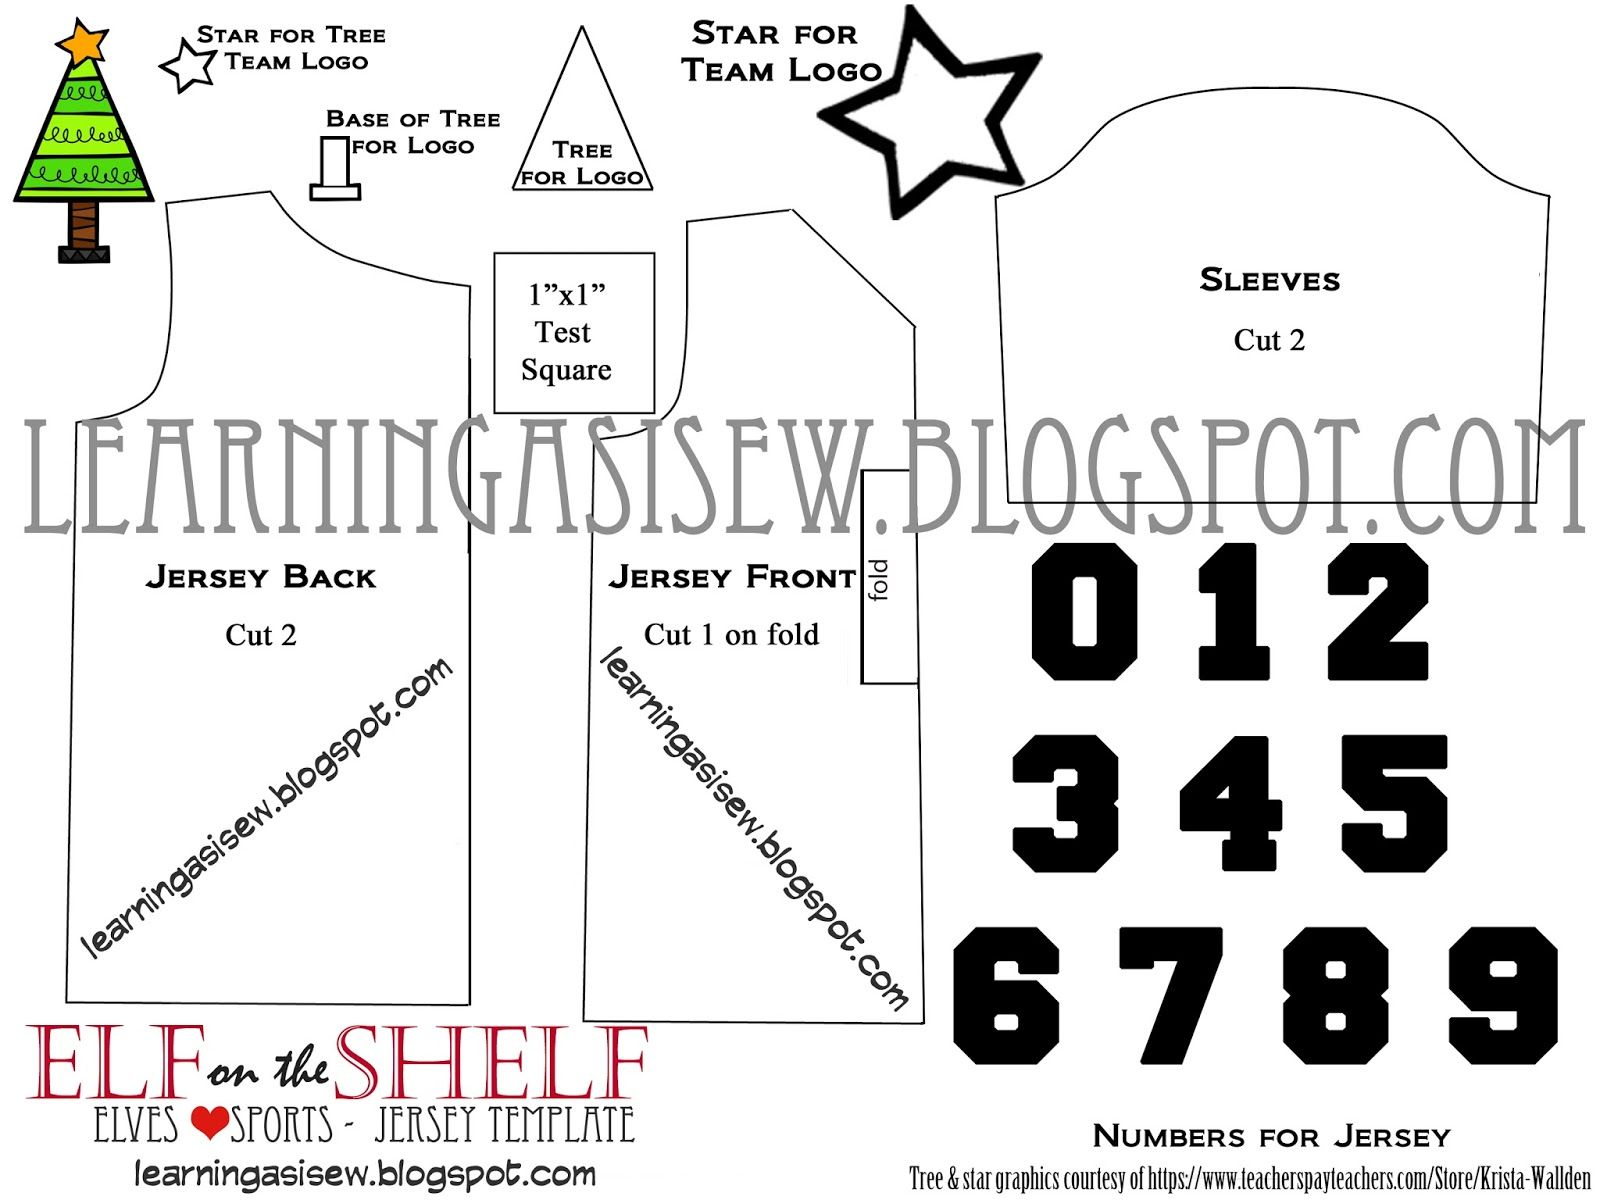 Elf+Jersey+Template+IMAGE+with+watermark.jpg (1600×1200) | Sewing ...